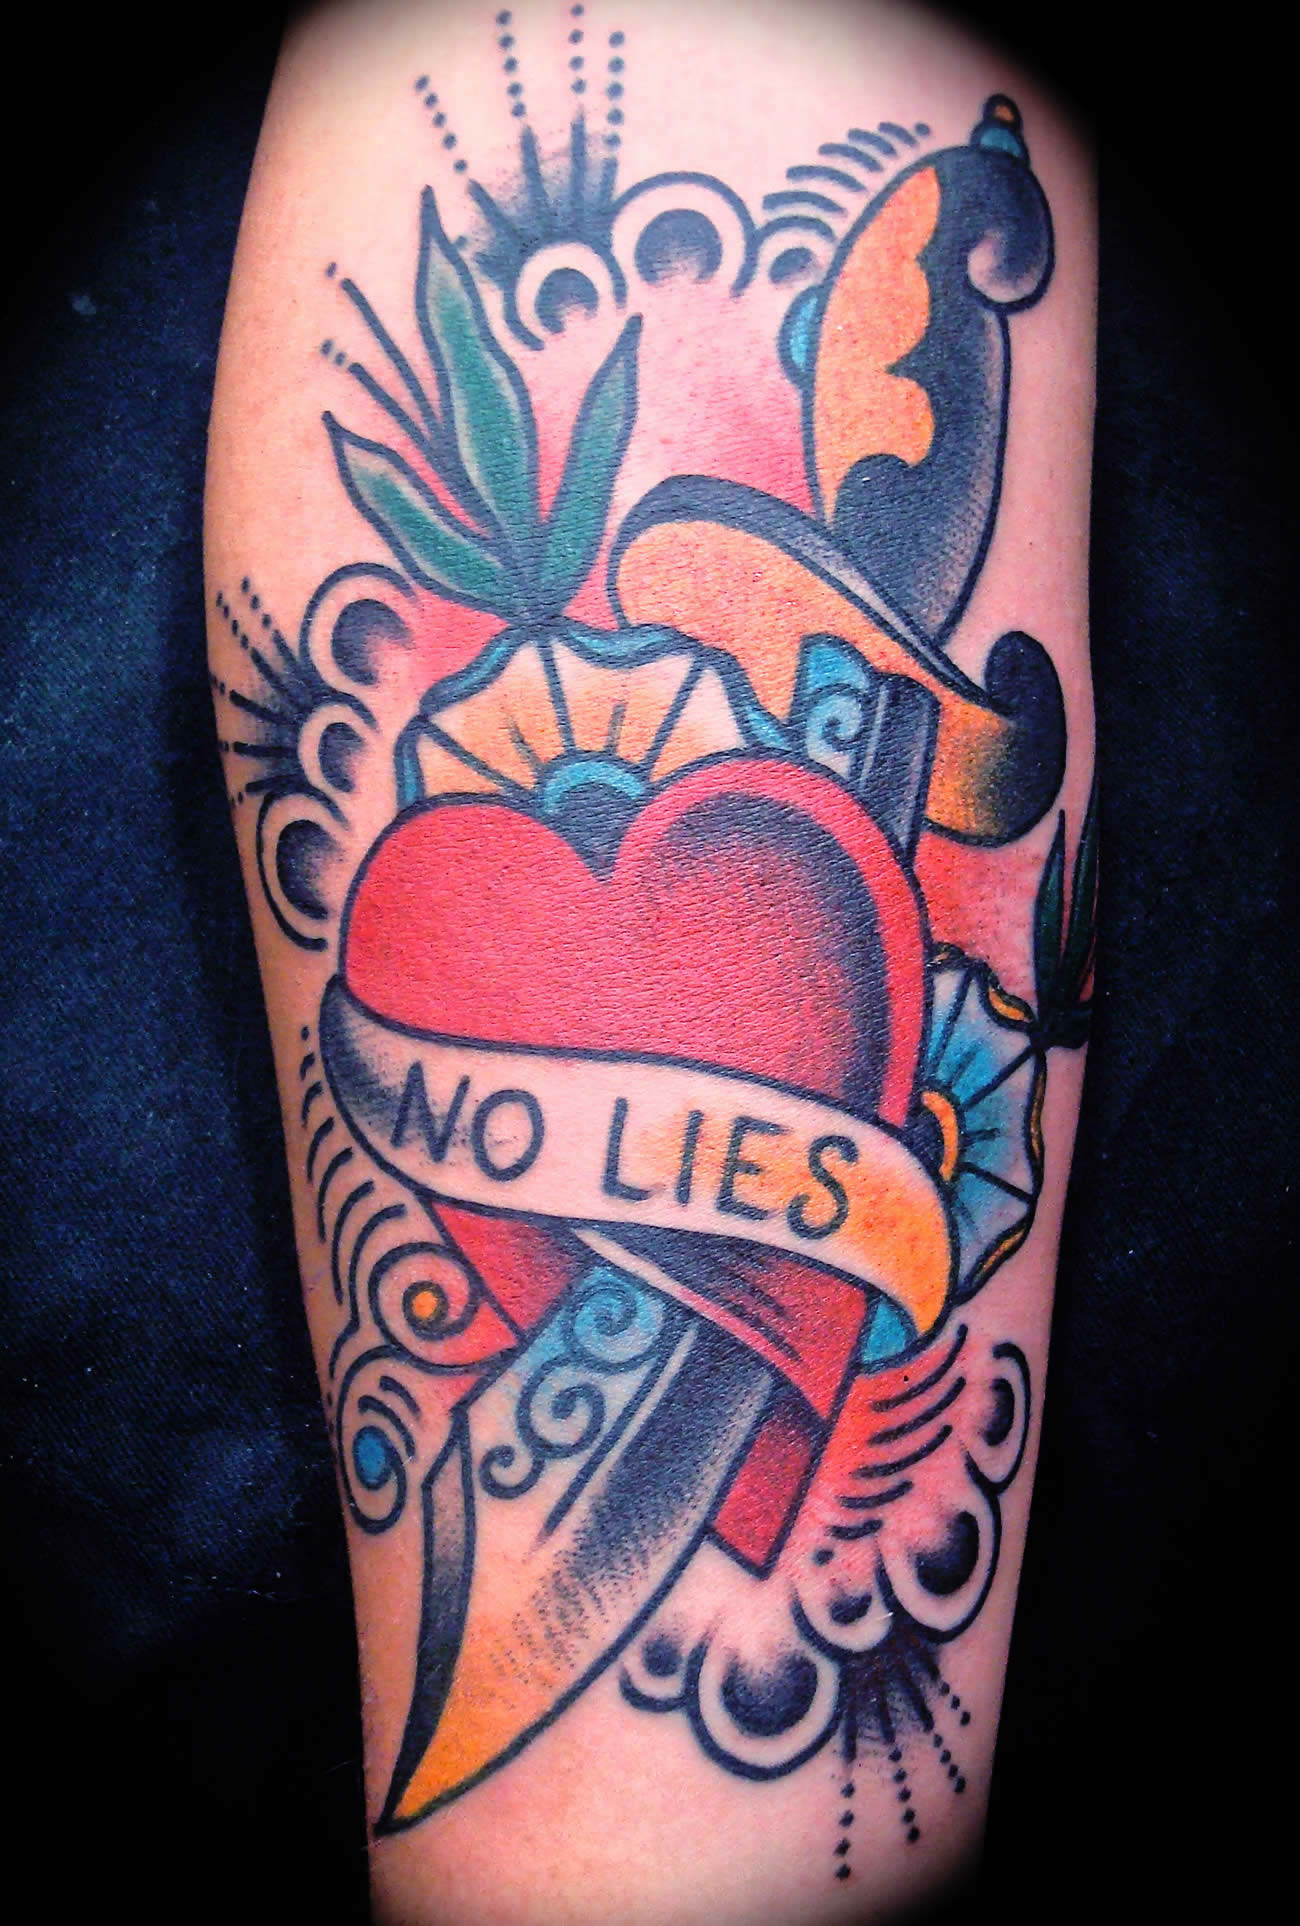 no lies heart tattoo by javier rodriguez